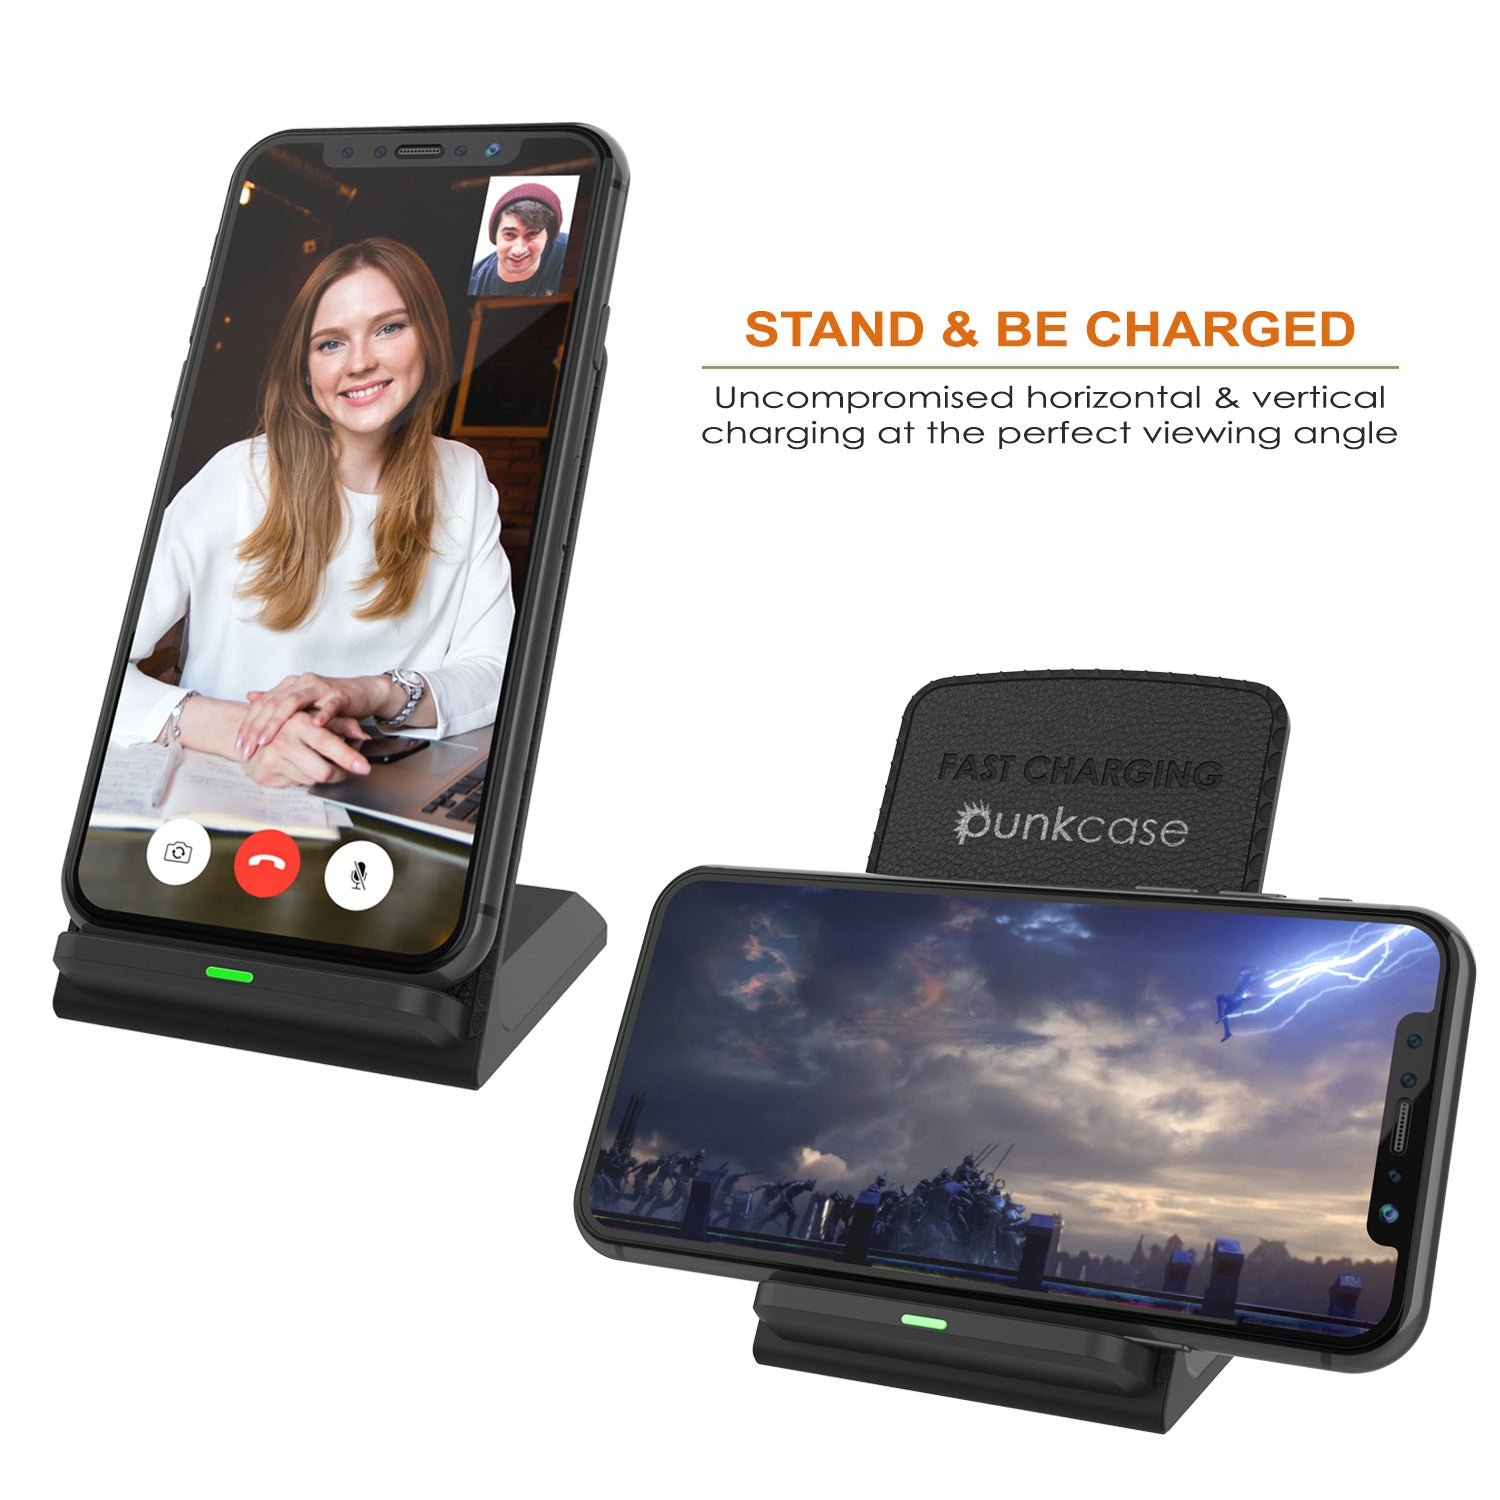 Punkcase Wireless Phone Charging Station